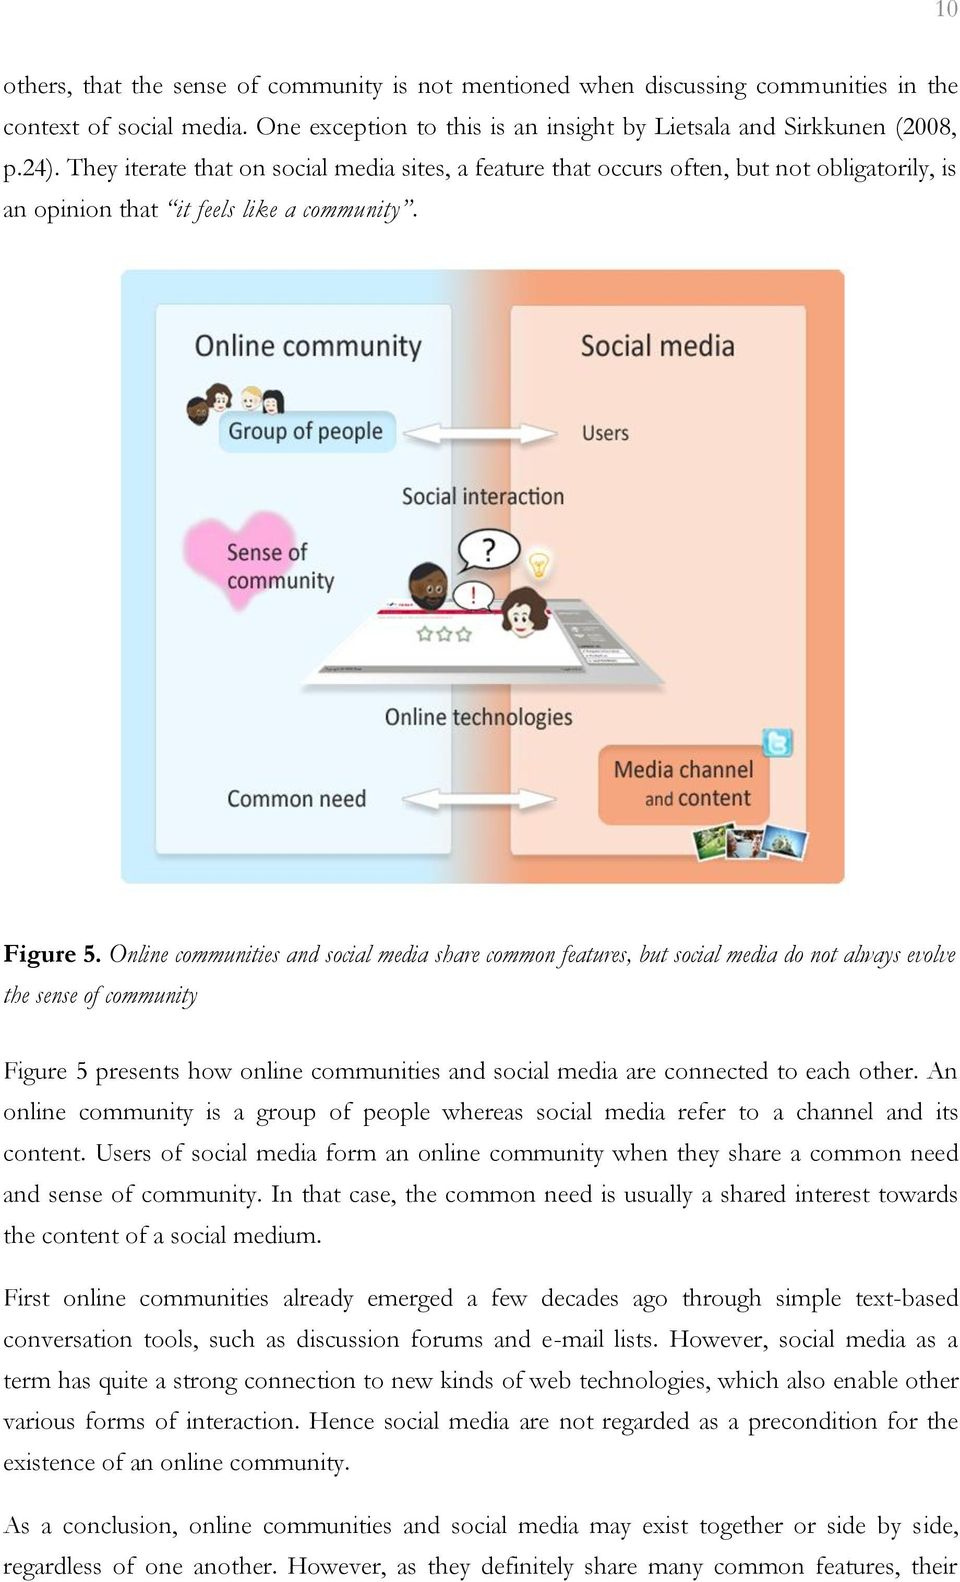 Online communities and social media share common features, but social media do not always evolve the sense of community Figure 5 presents how online communities and social media are connected to each